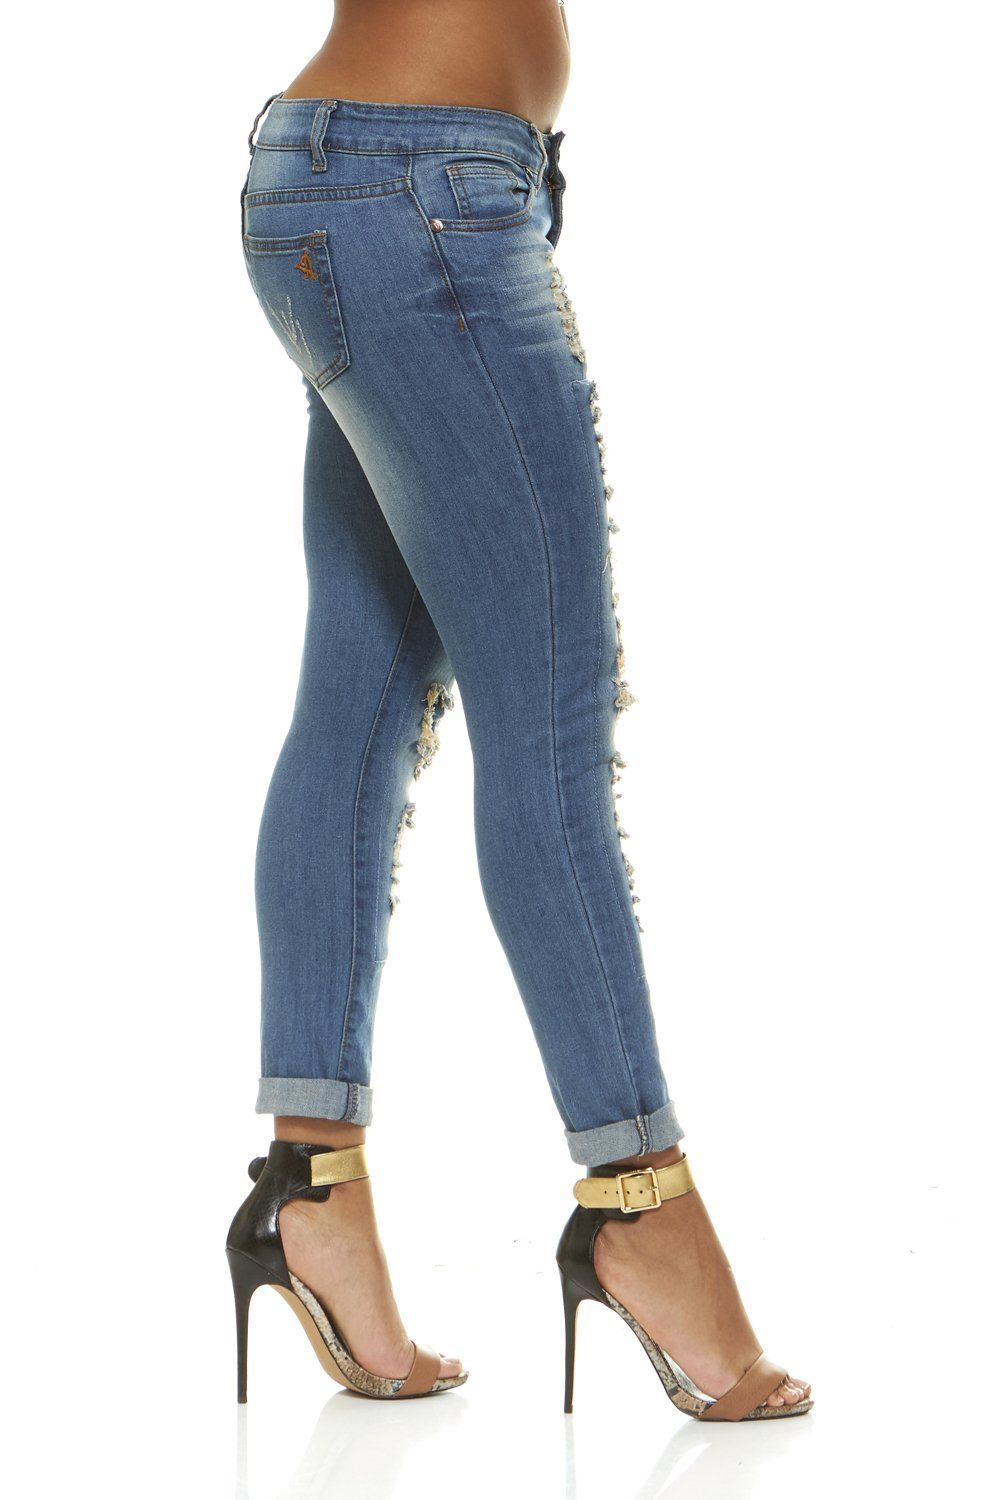 fea237a89231b V.I.P.JEANS Plus Size Jeans For Women Distressed Skinny Ripped Jeans Slim  Fit Stretchy Medium Blue Wash Plus Size 14 * Check out this great product.